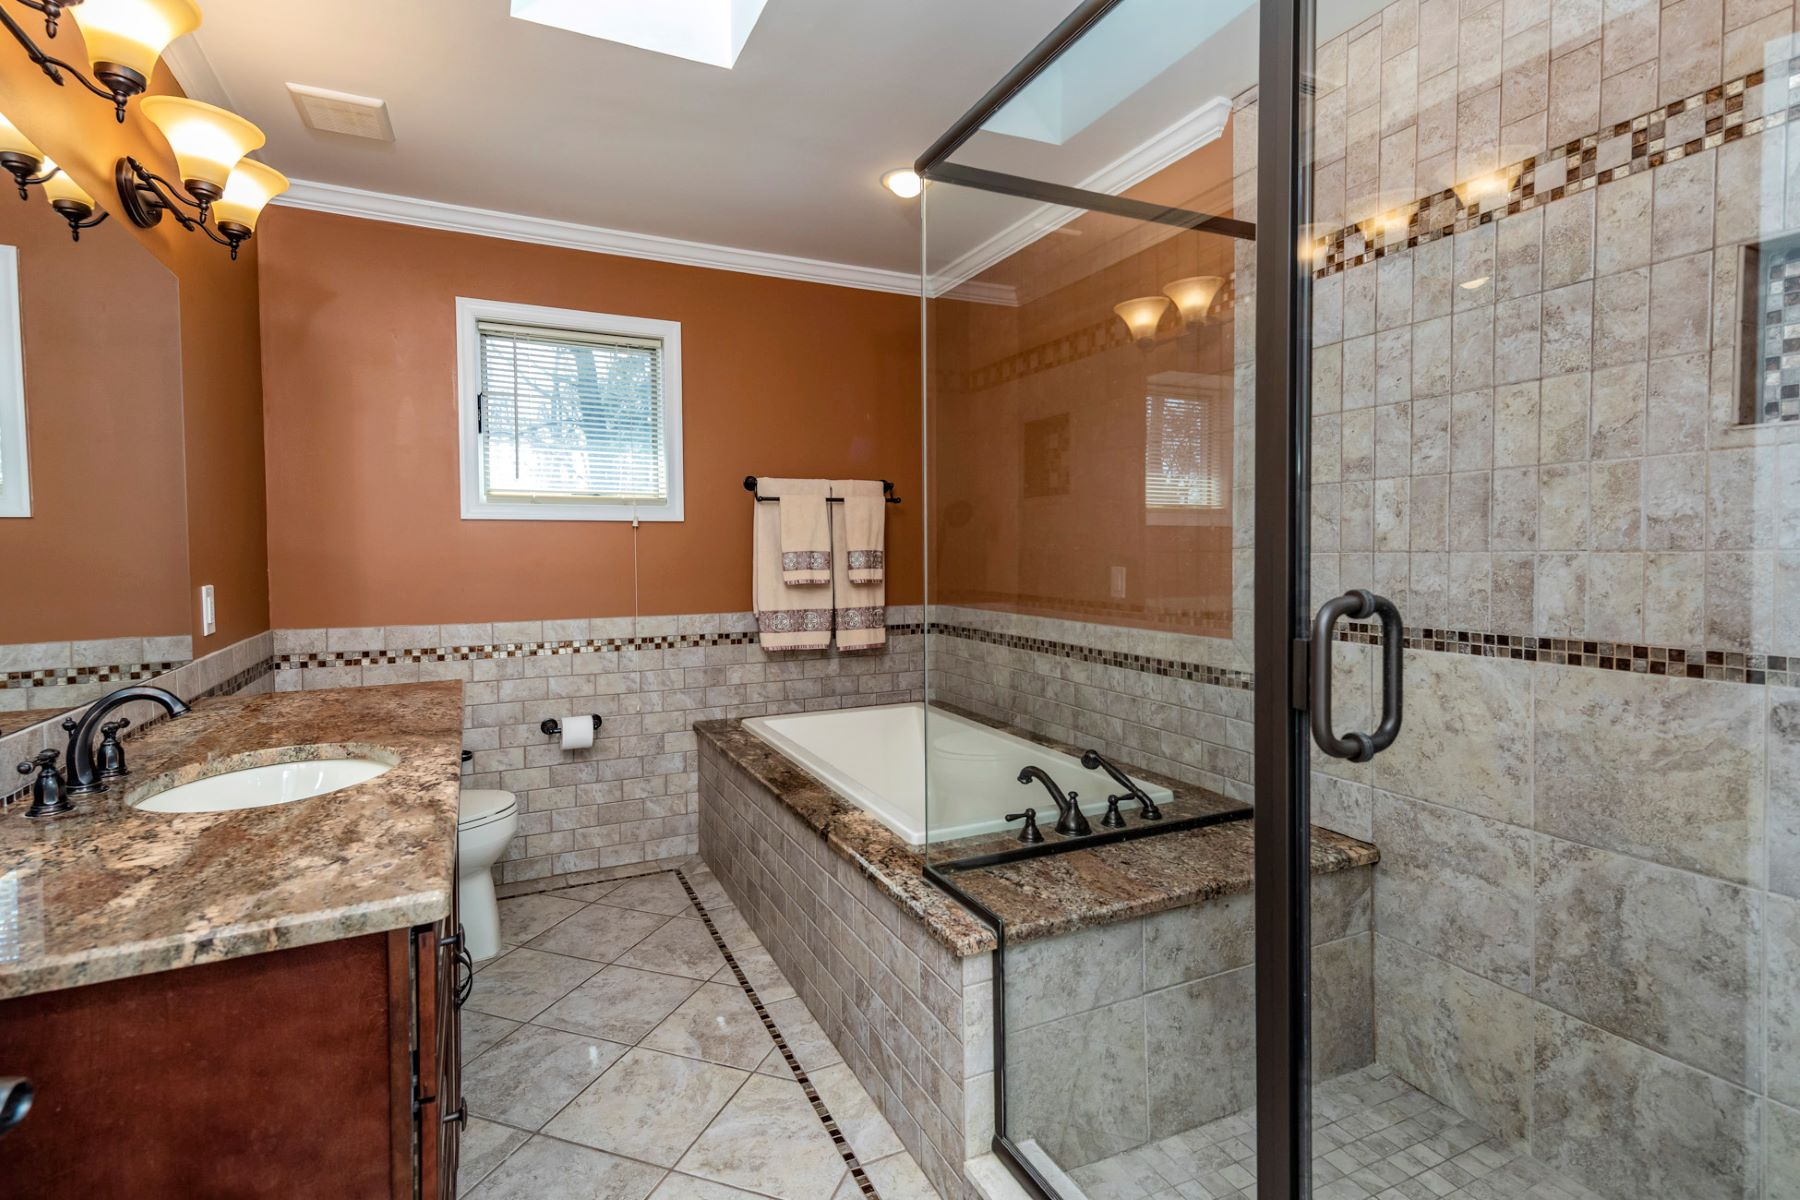 Additional photo for property listing at A Fresh Look 33 Sycamore Lane, Skillman, New Jersey 08558 United States